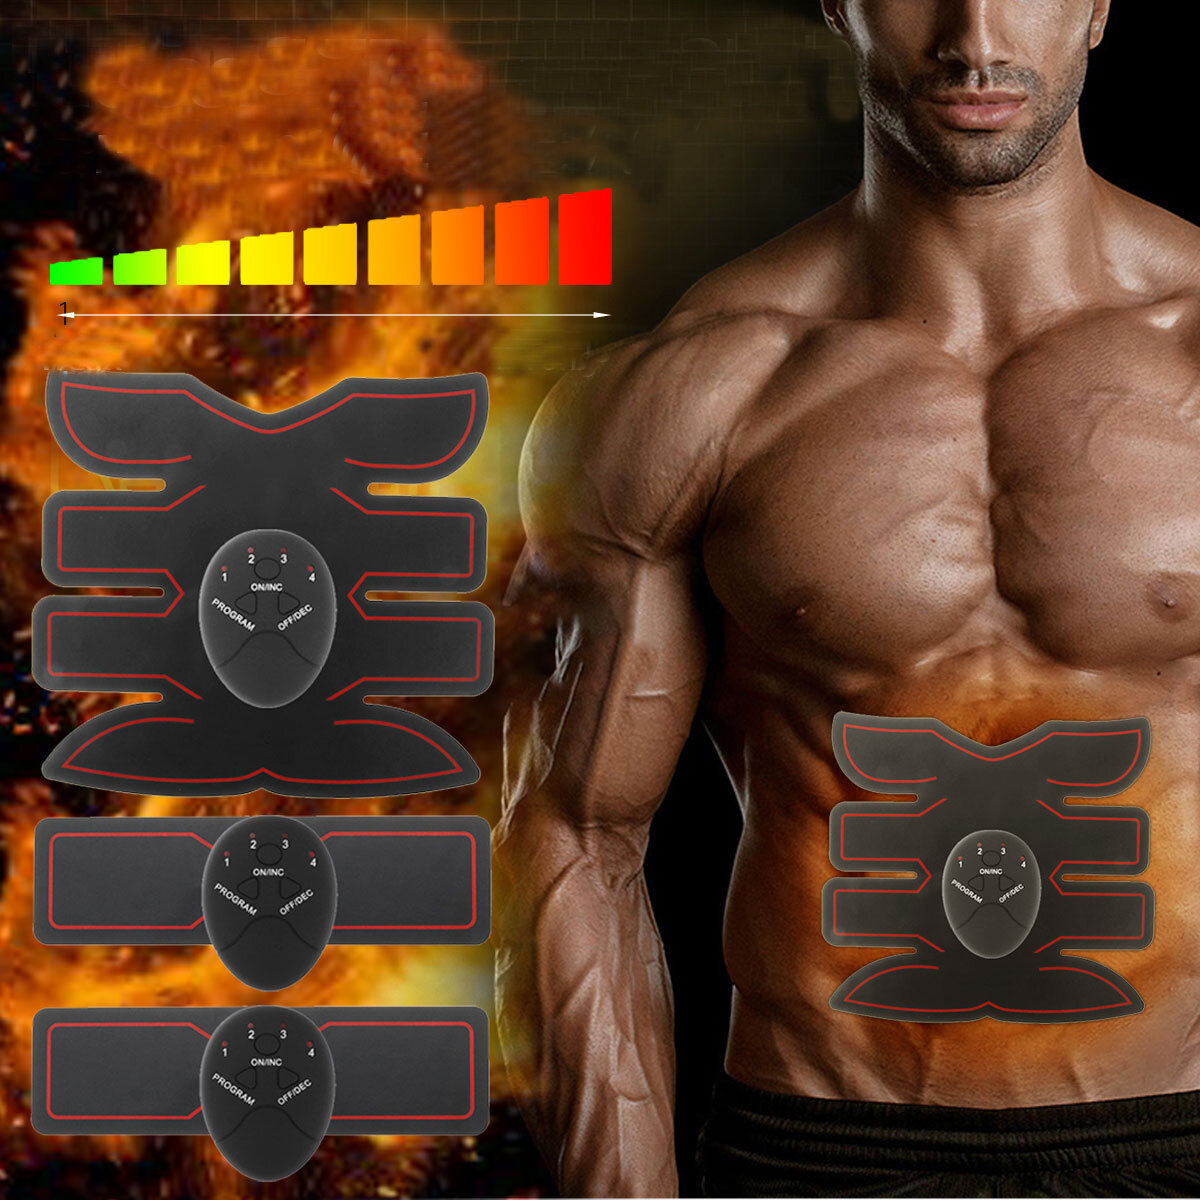 KALOAD ABS Abdominale Muscle Trainer Pleine Muscle Corps Stimulation Fitness Massager